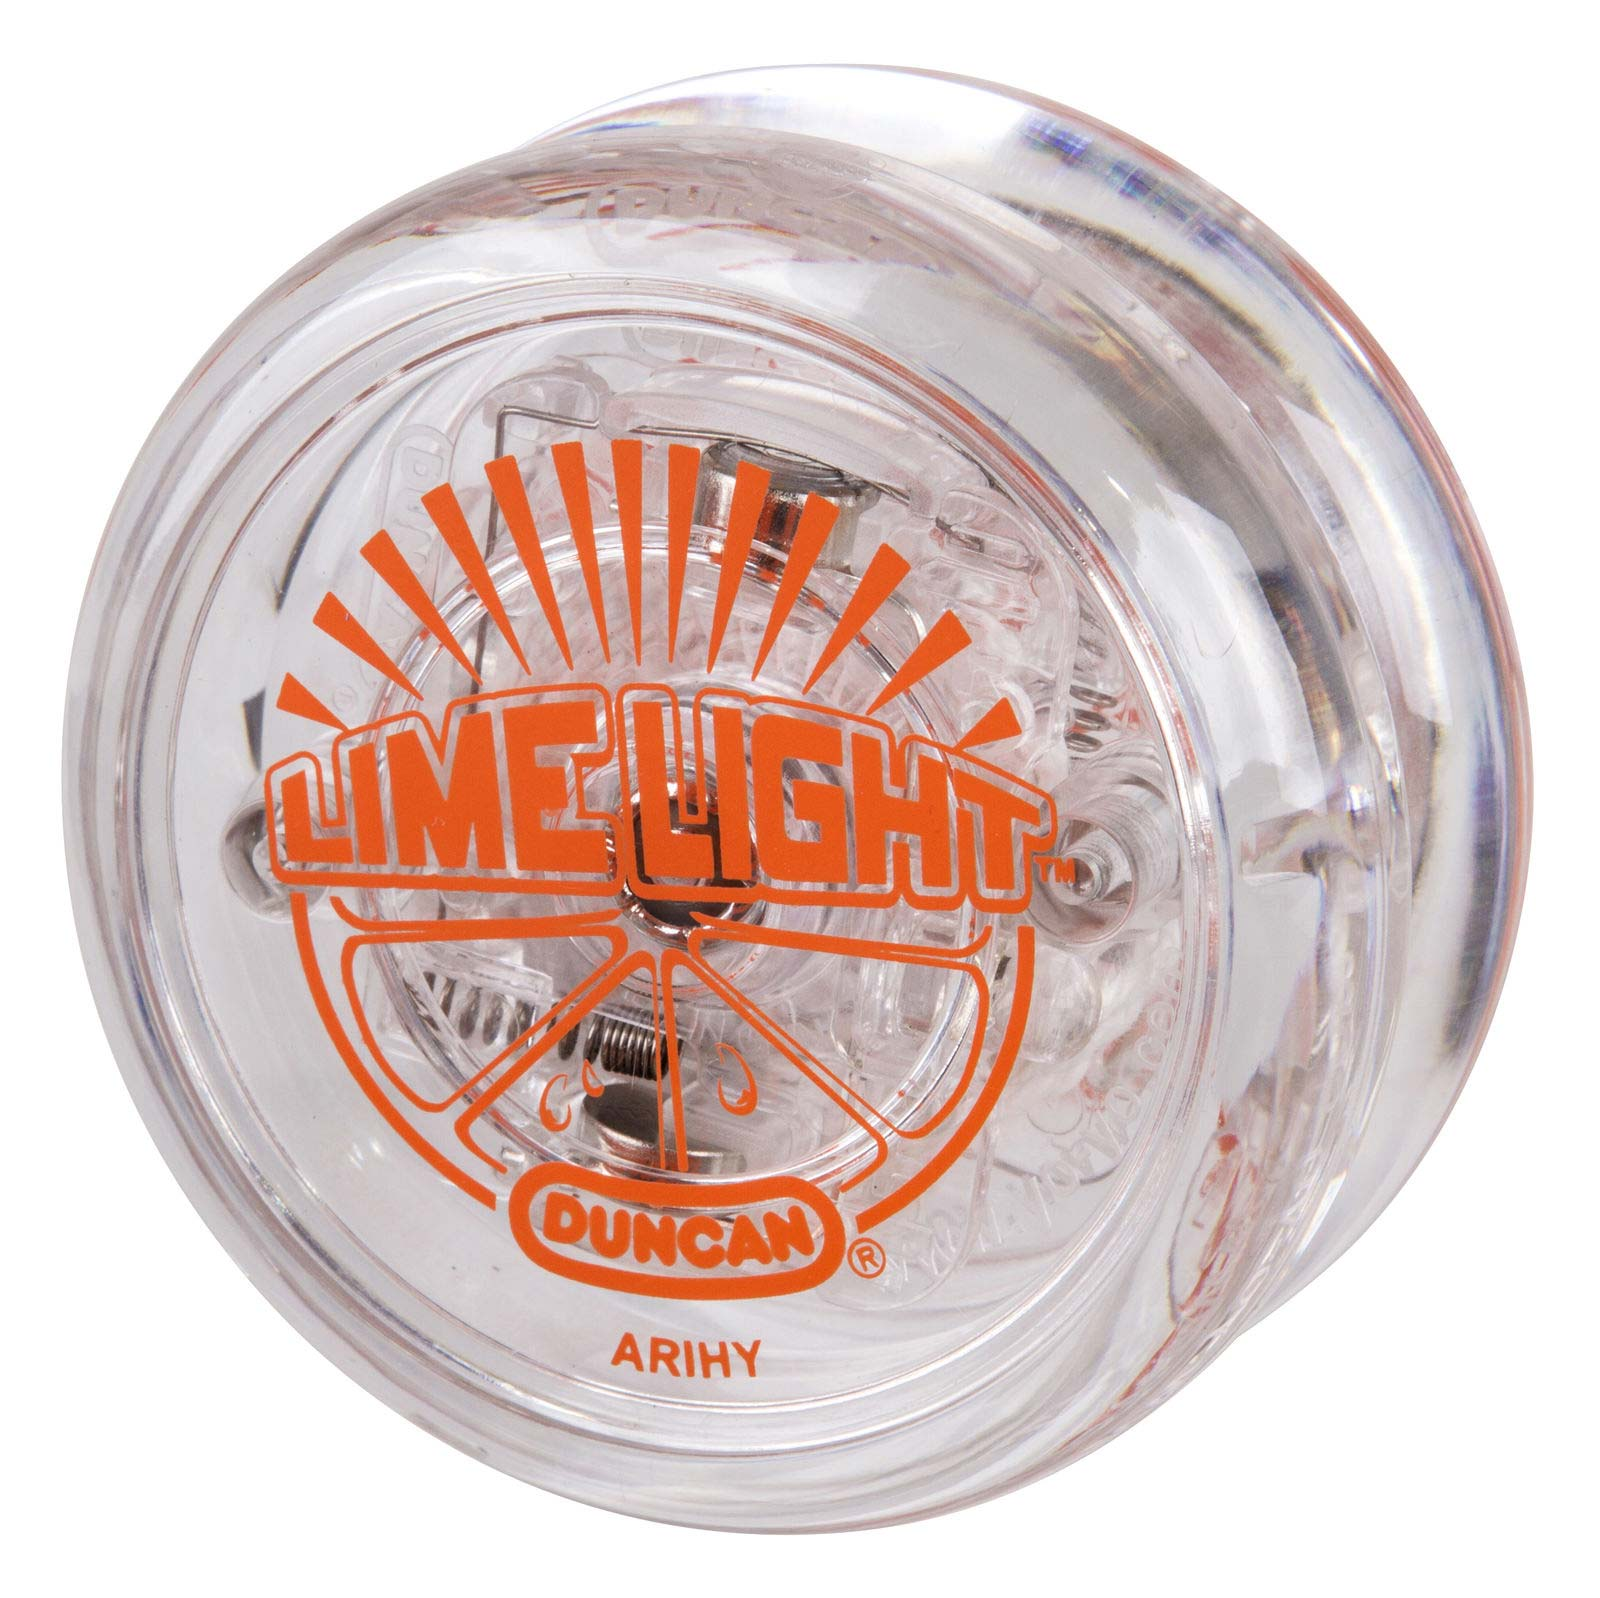 Duncan Lime Light Yo-Yo with LED Lights - Transparent Orange